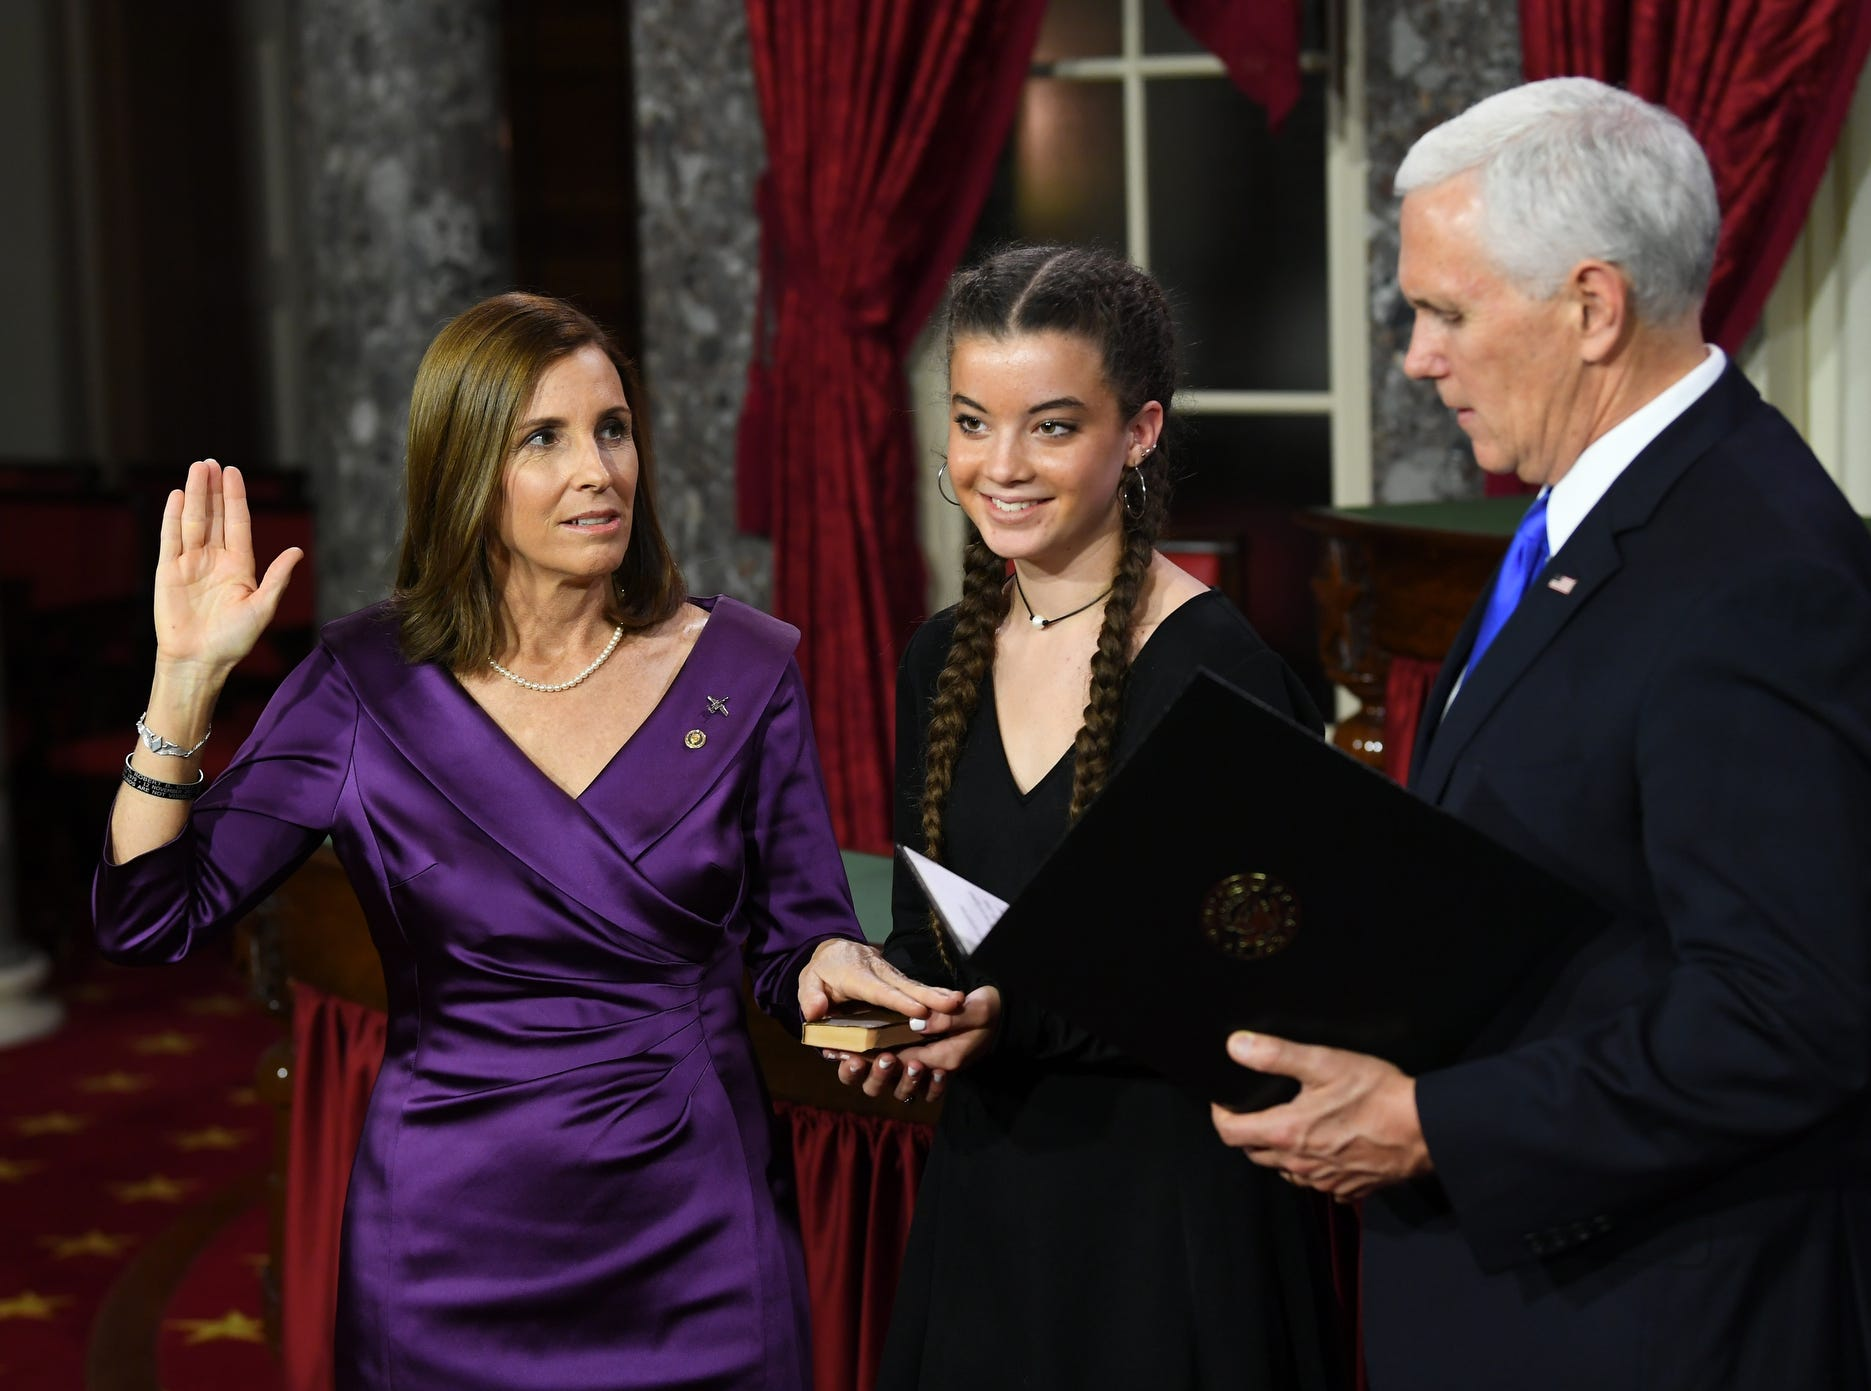 Vice President Mike Pence officiates ceremonial swearing-in of Senator Martha McSally (R-AZ) holding a Bible recovered from Pearl Harbor in the Old Senate Chambers at the U.S. Capitol.